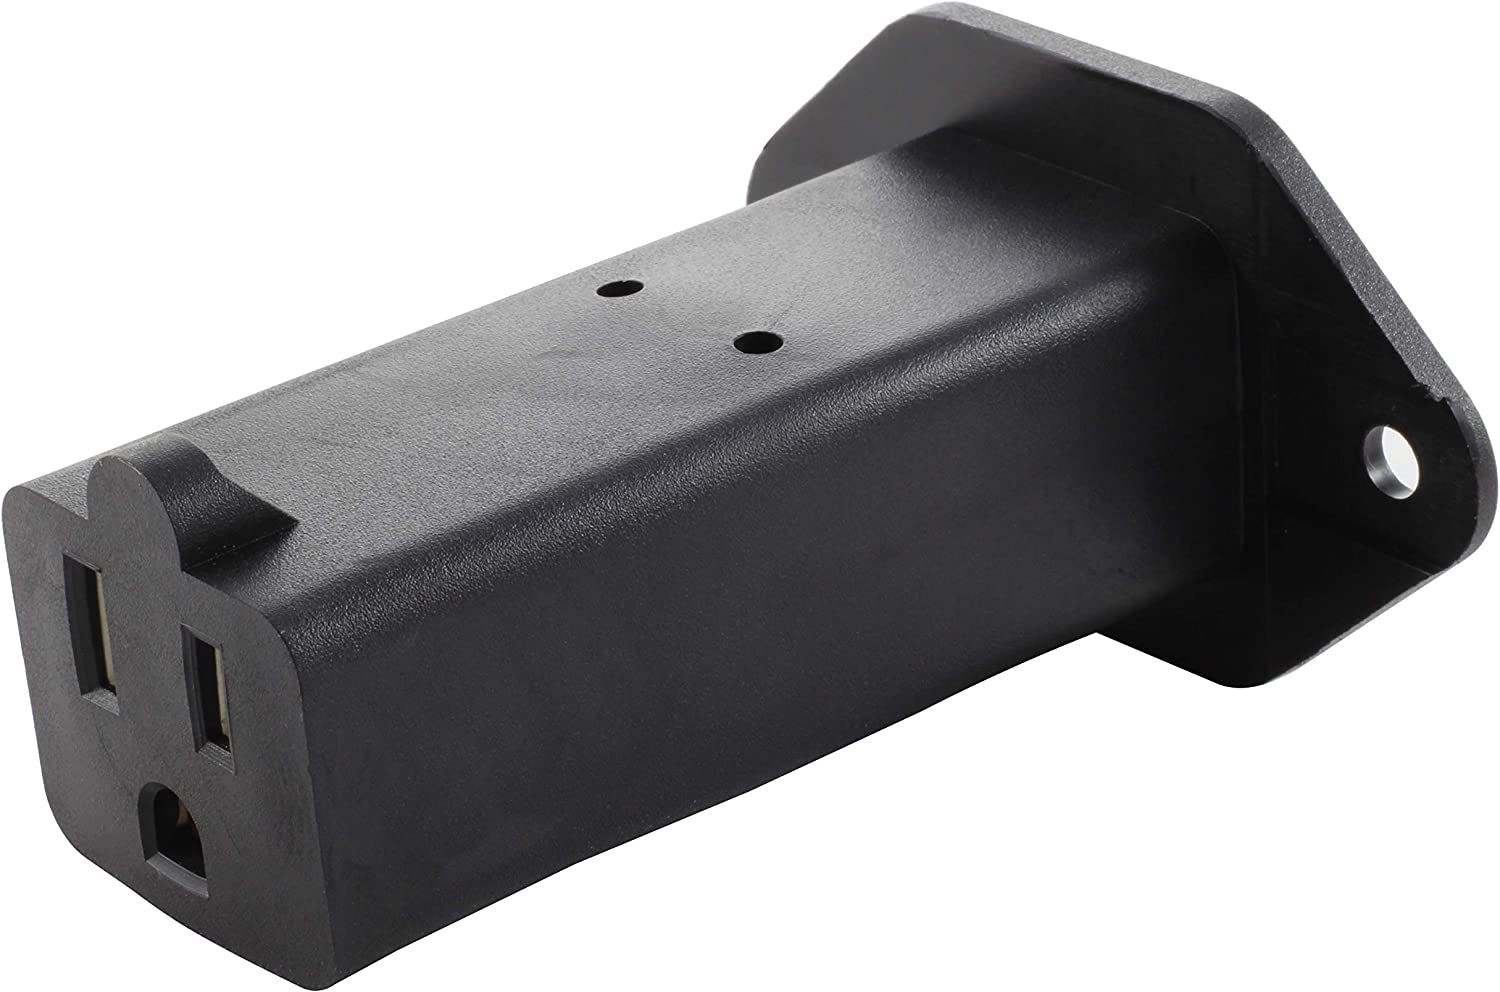 AC WORKS [AD1308-FG] IEC C14/ SHEET E with Mounting Holes to U.S. Household NEMA 5-15R Connector